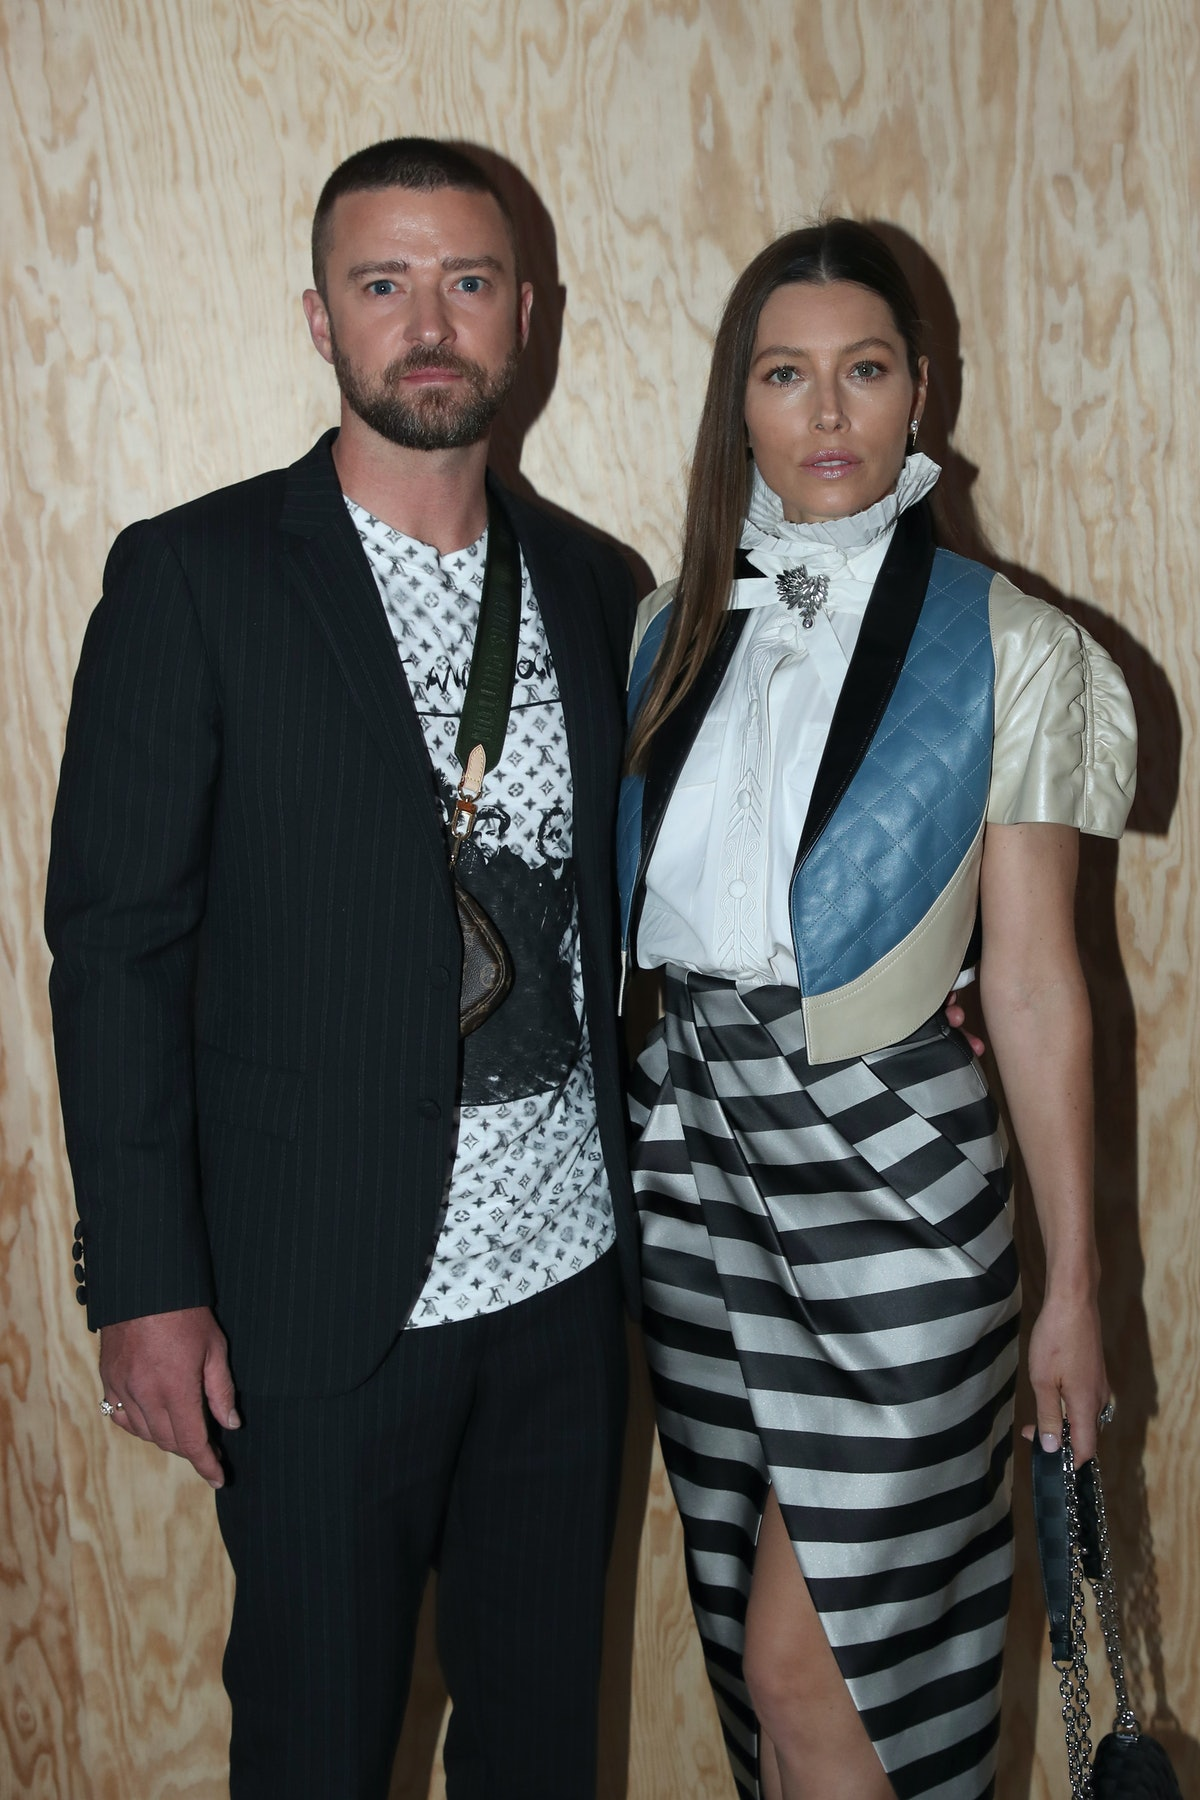 PARIS, FRANCE - OCTOBER 01: Justin Timberlake and Jessica Biel attend the Louis Vuitton Womenswear S...